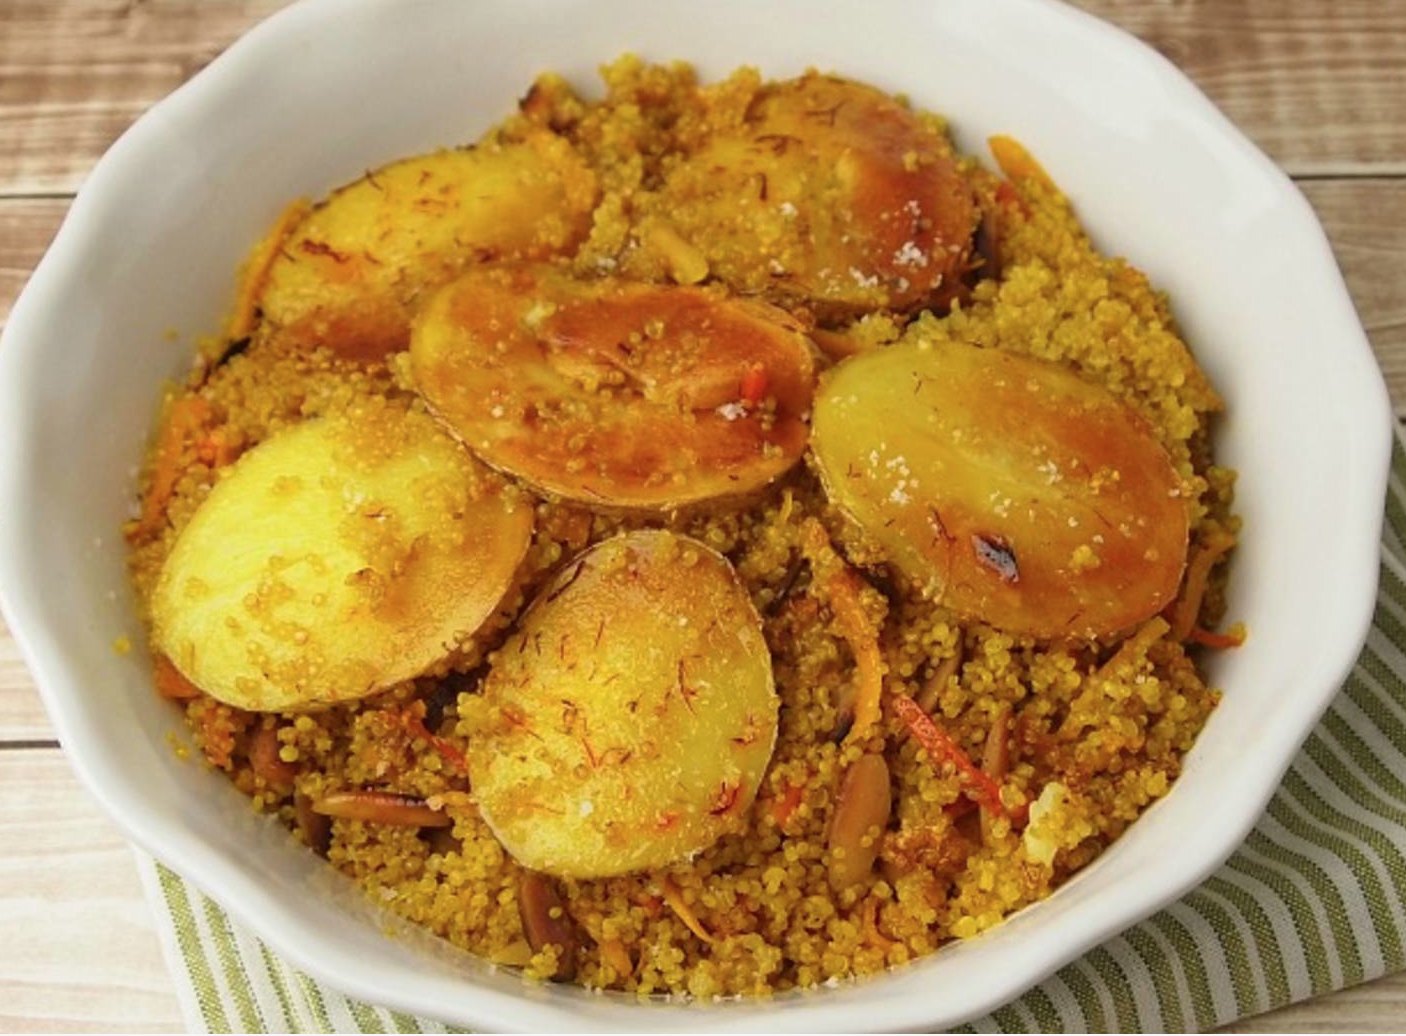 Persian Quinoa with Tadig by Tamar Genger from JoyofKosher.com